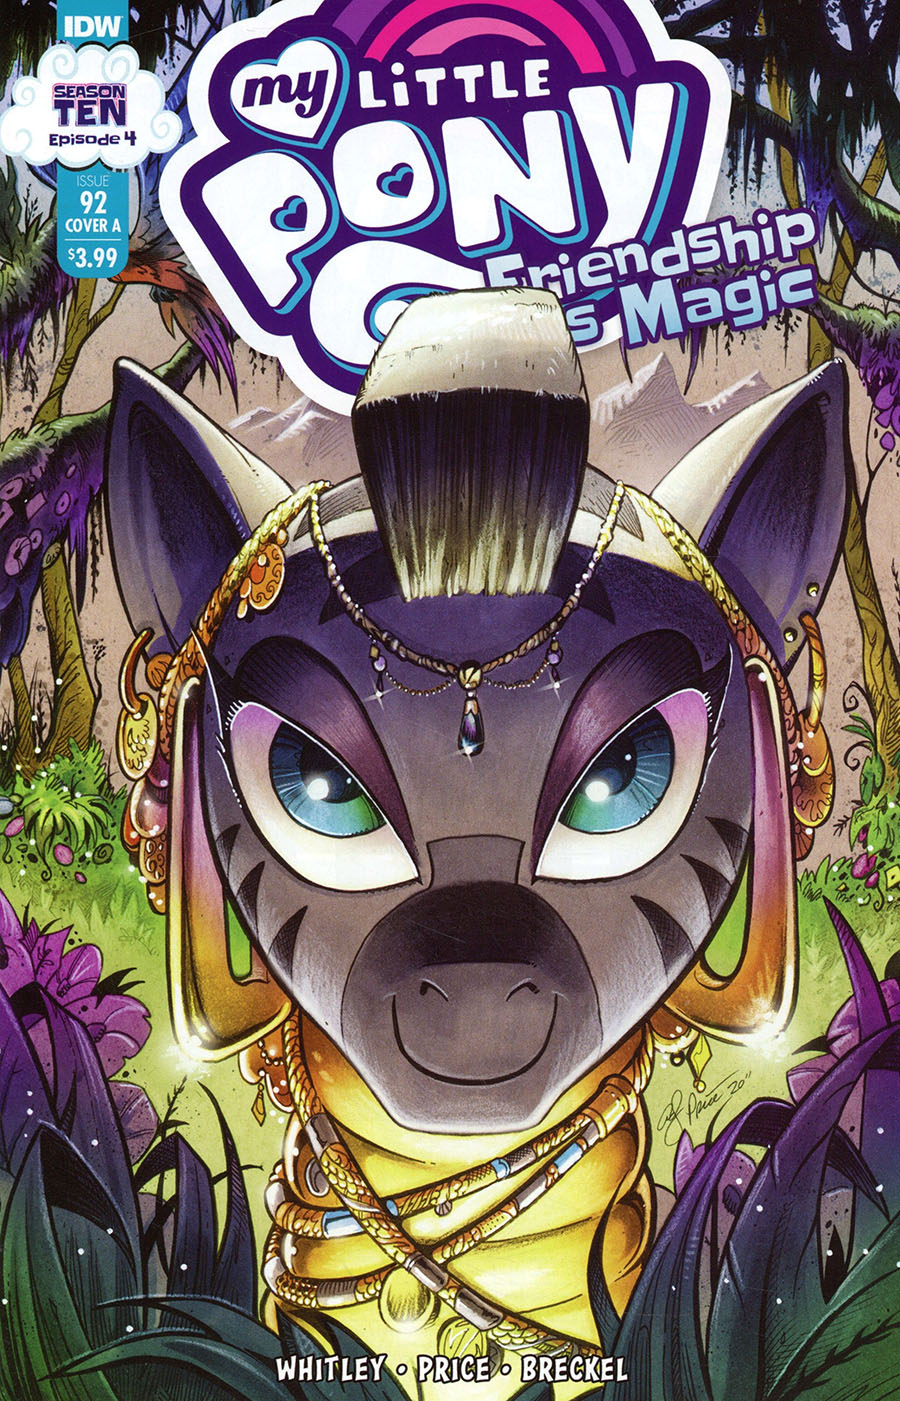 My Little Pony Friendship Is Magic #92 Cover A Regular Andy Price Cover